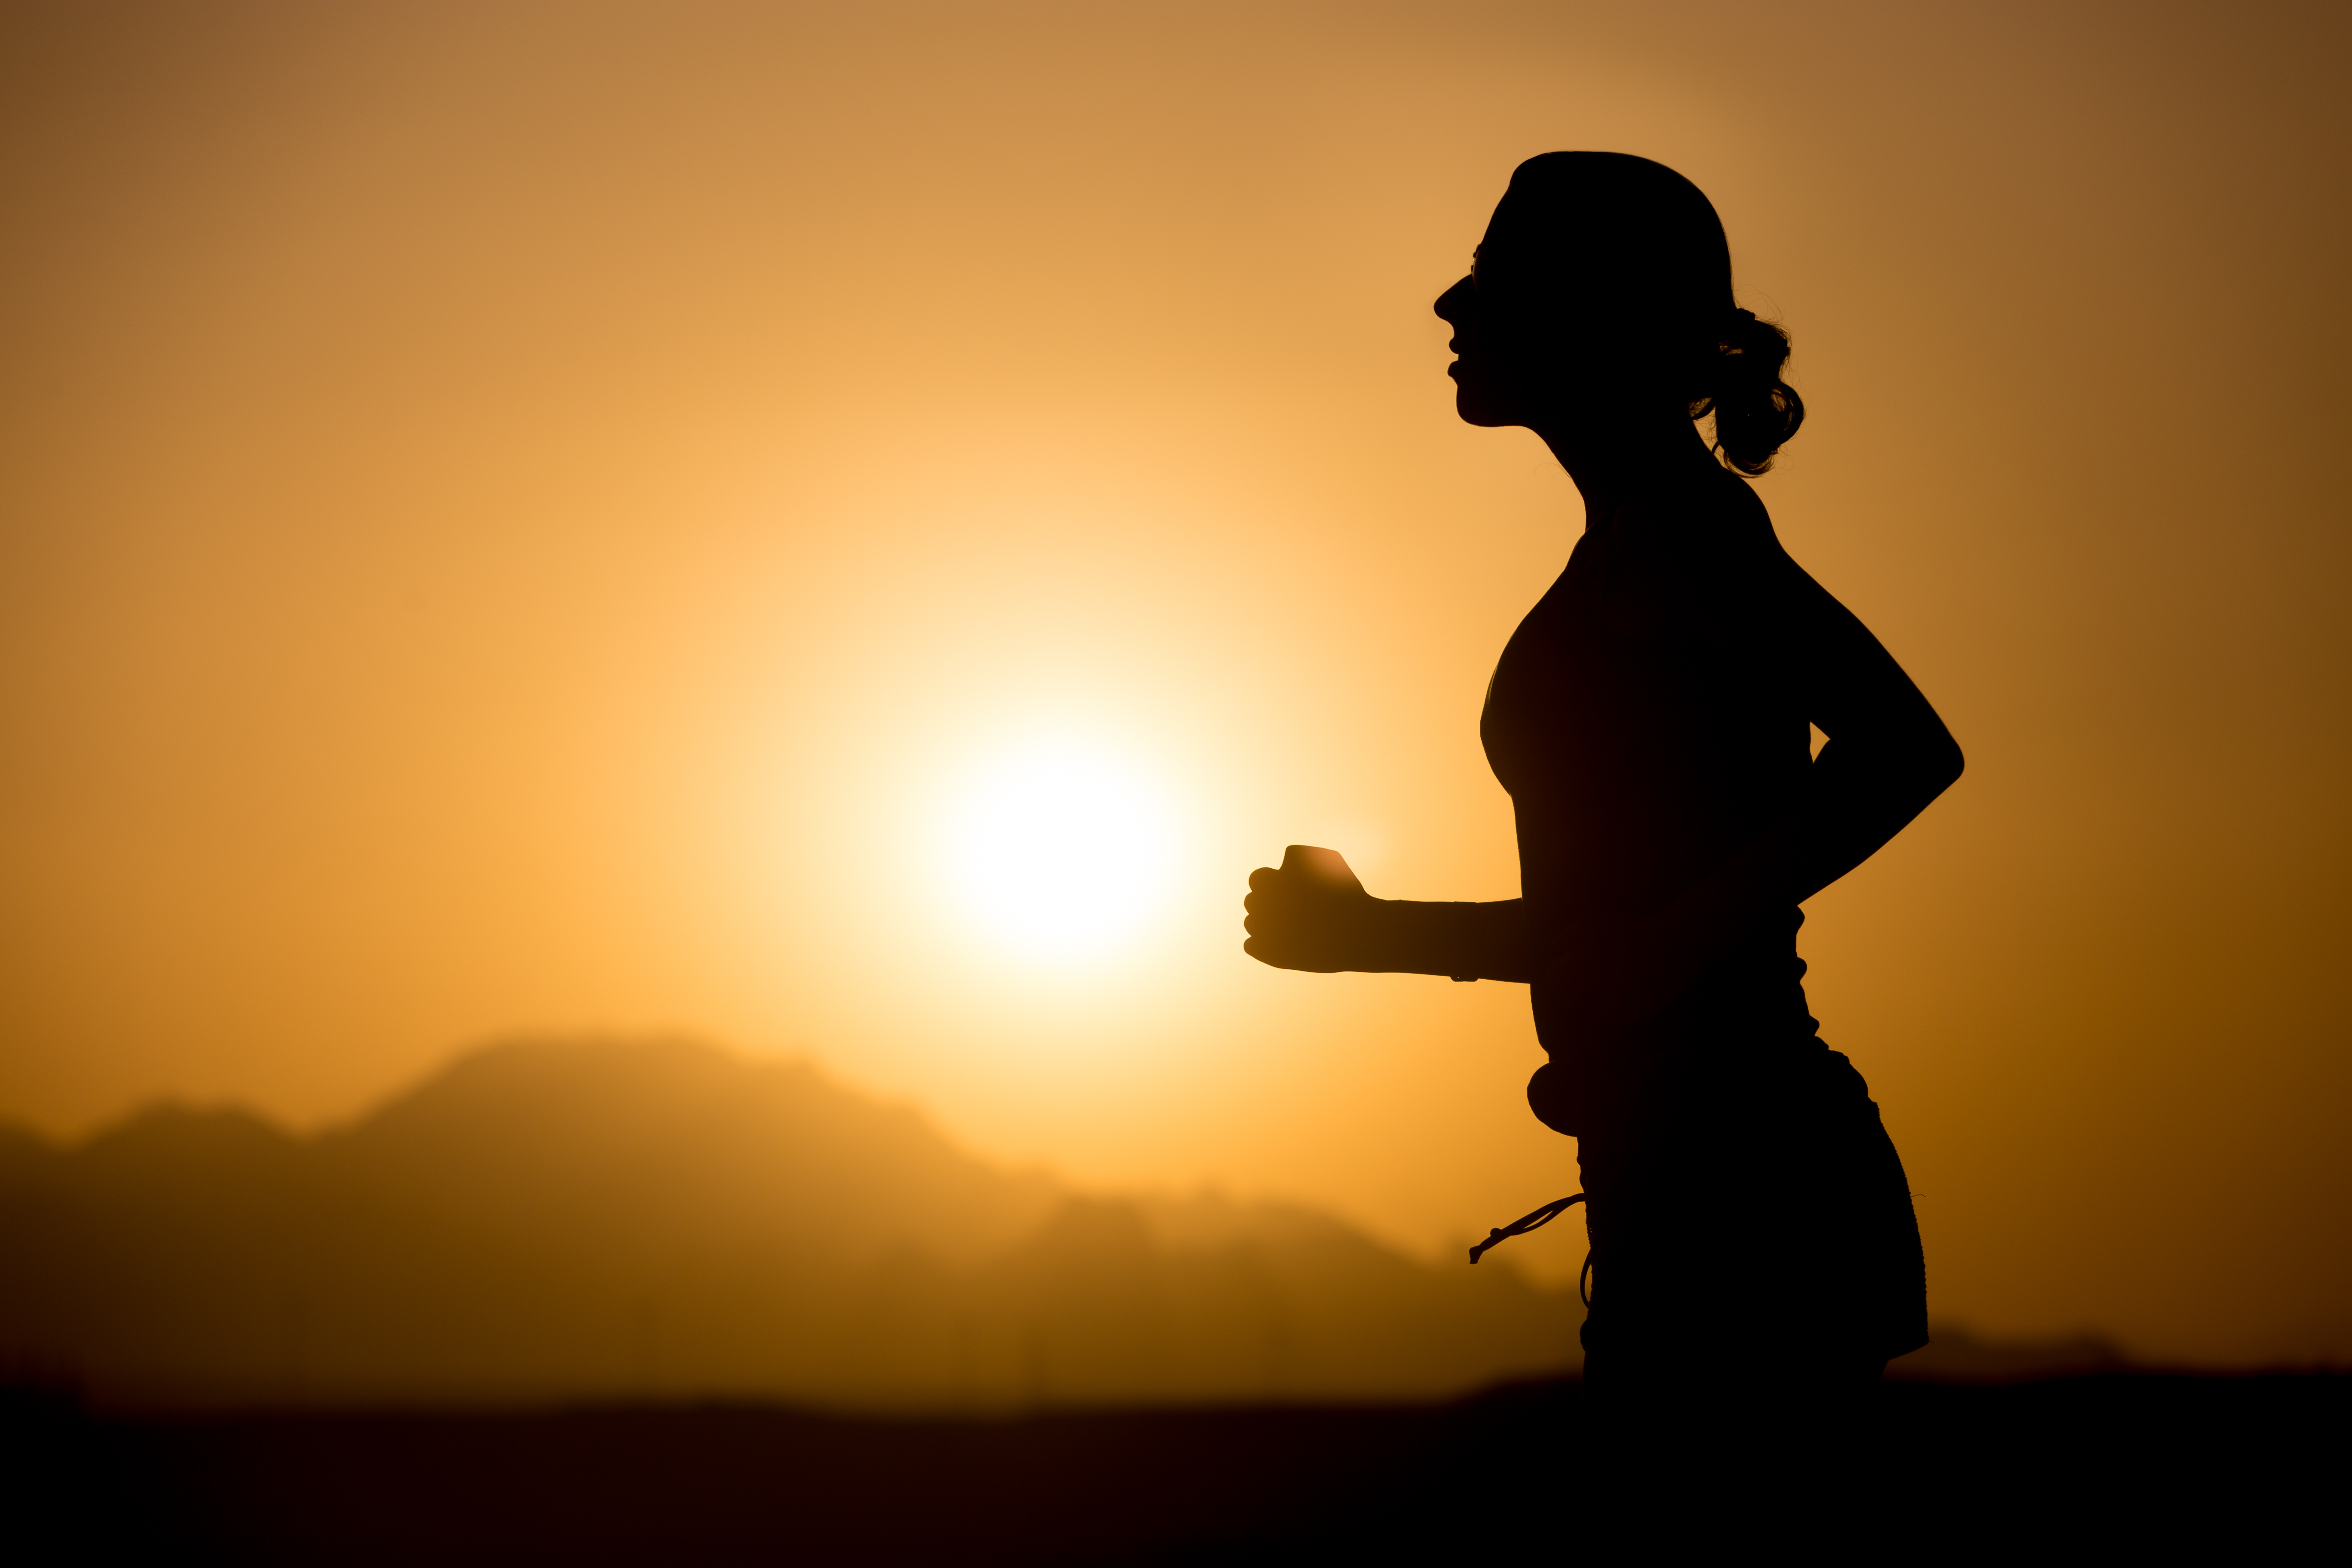 Profile silhouette of young sporty woman jogging against colorful picturesque mountainous landscape with rising or setting sun, copy space